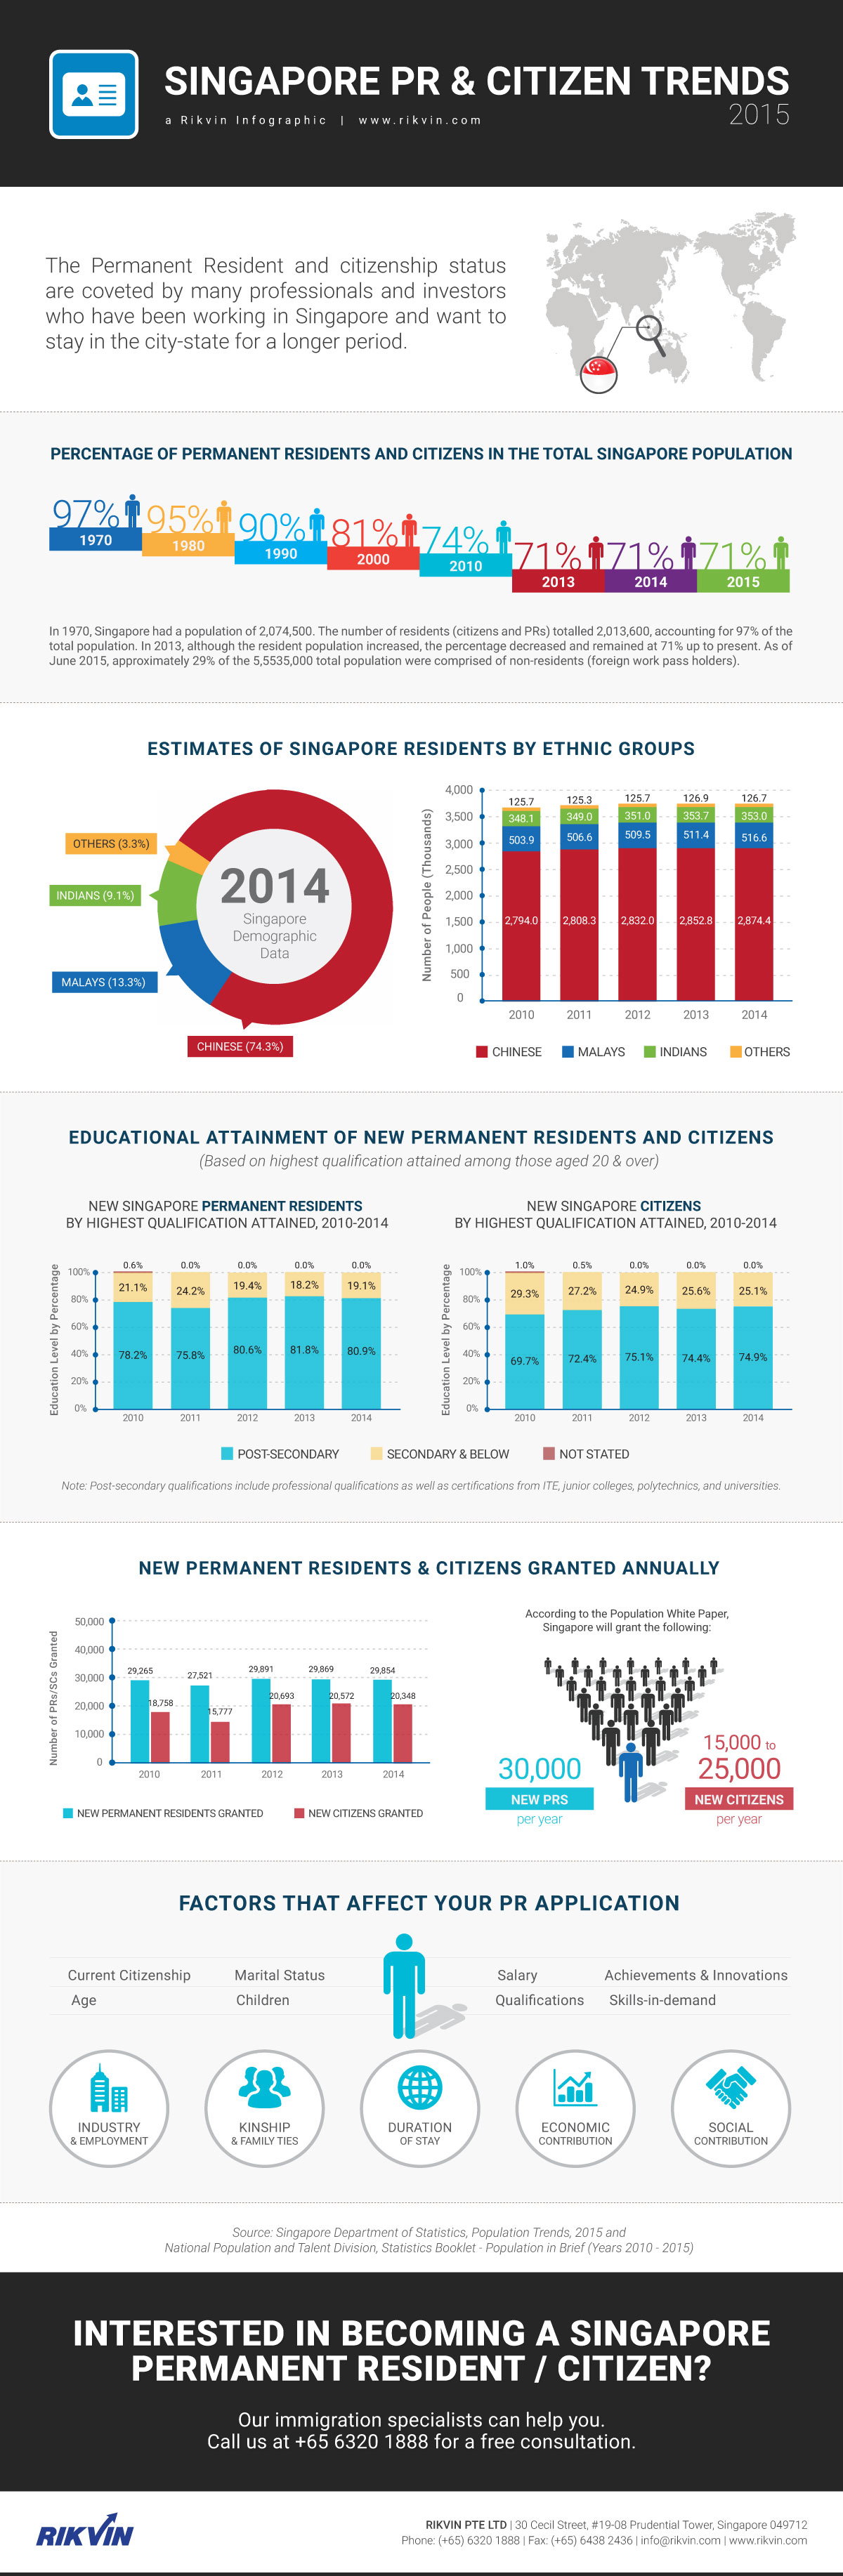 Singapore-PR-and-Citizen-Trends-2015-Rikvin_Infographic Singapore Permanent Resident and Citizen Trends between 2010 and 2015